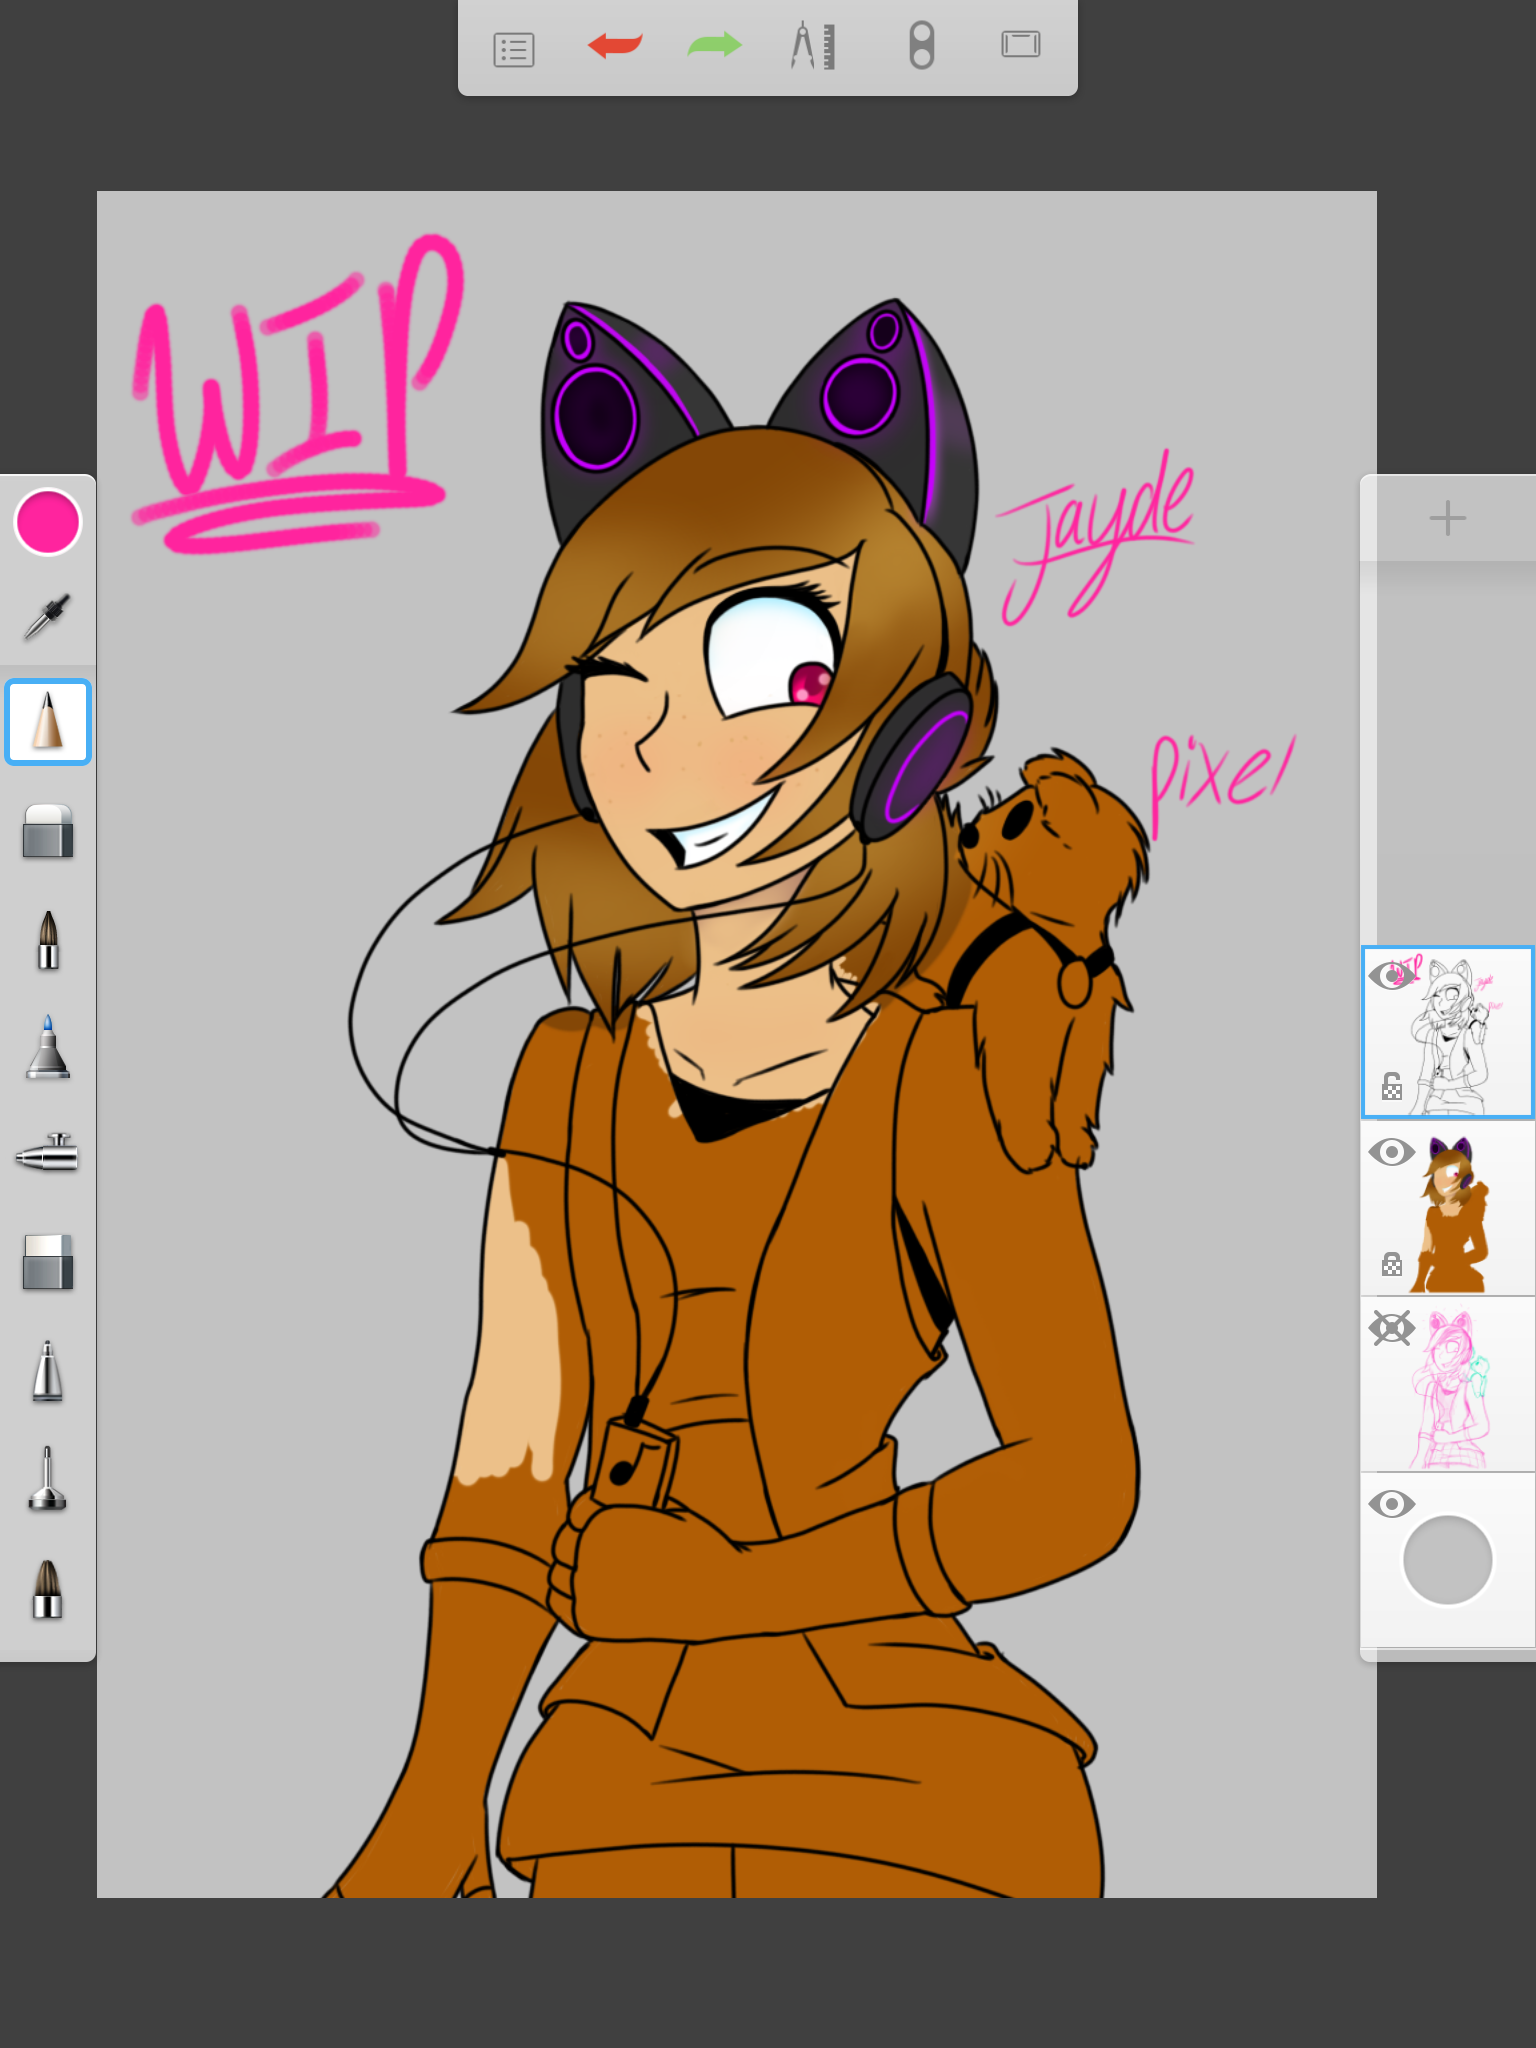 lizandfandoms] I'm almost done with the drawing, I didn't